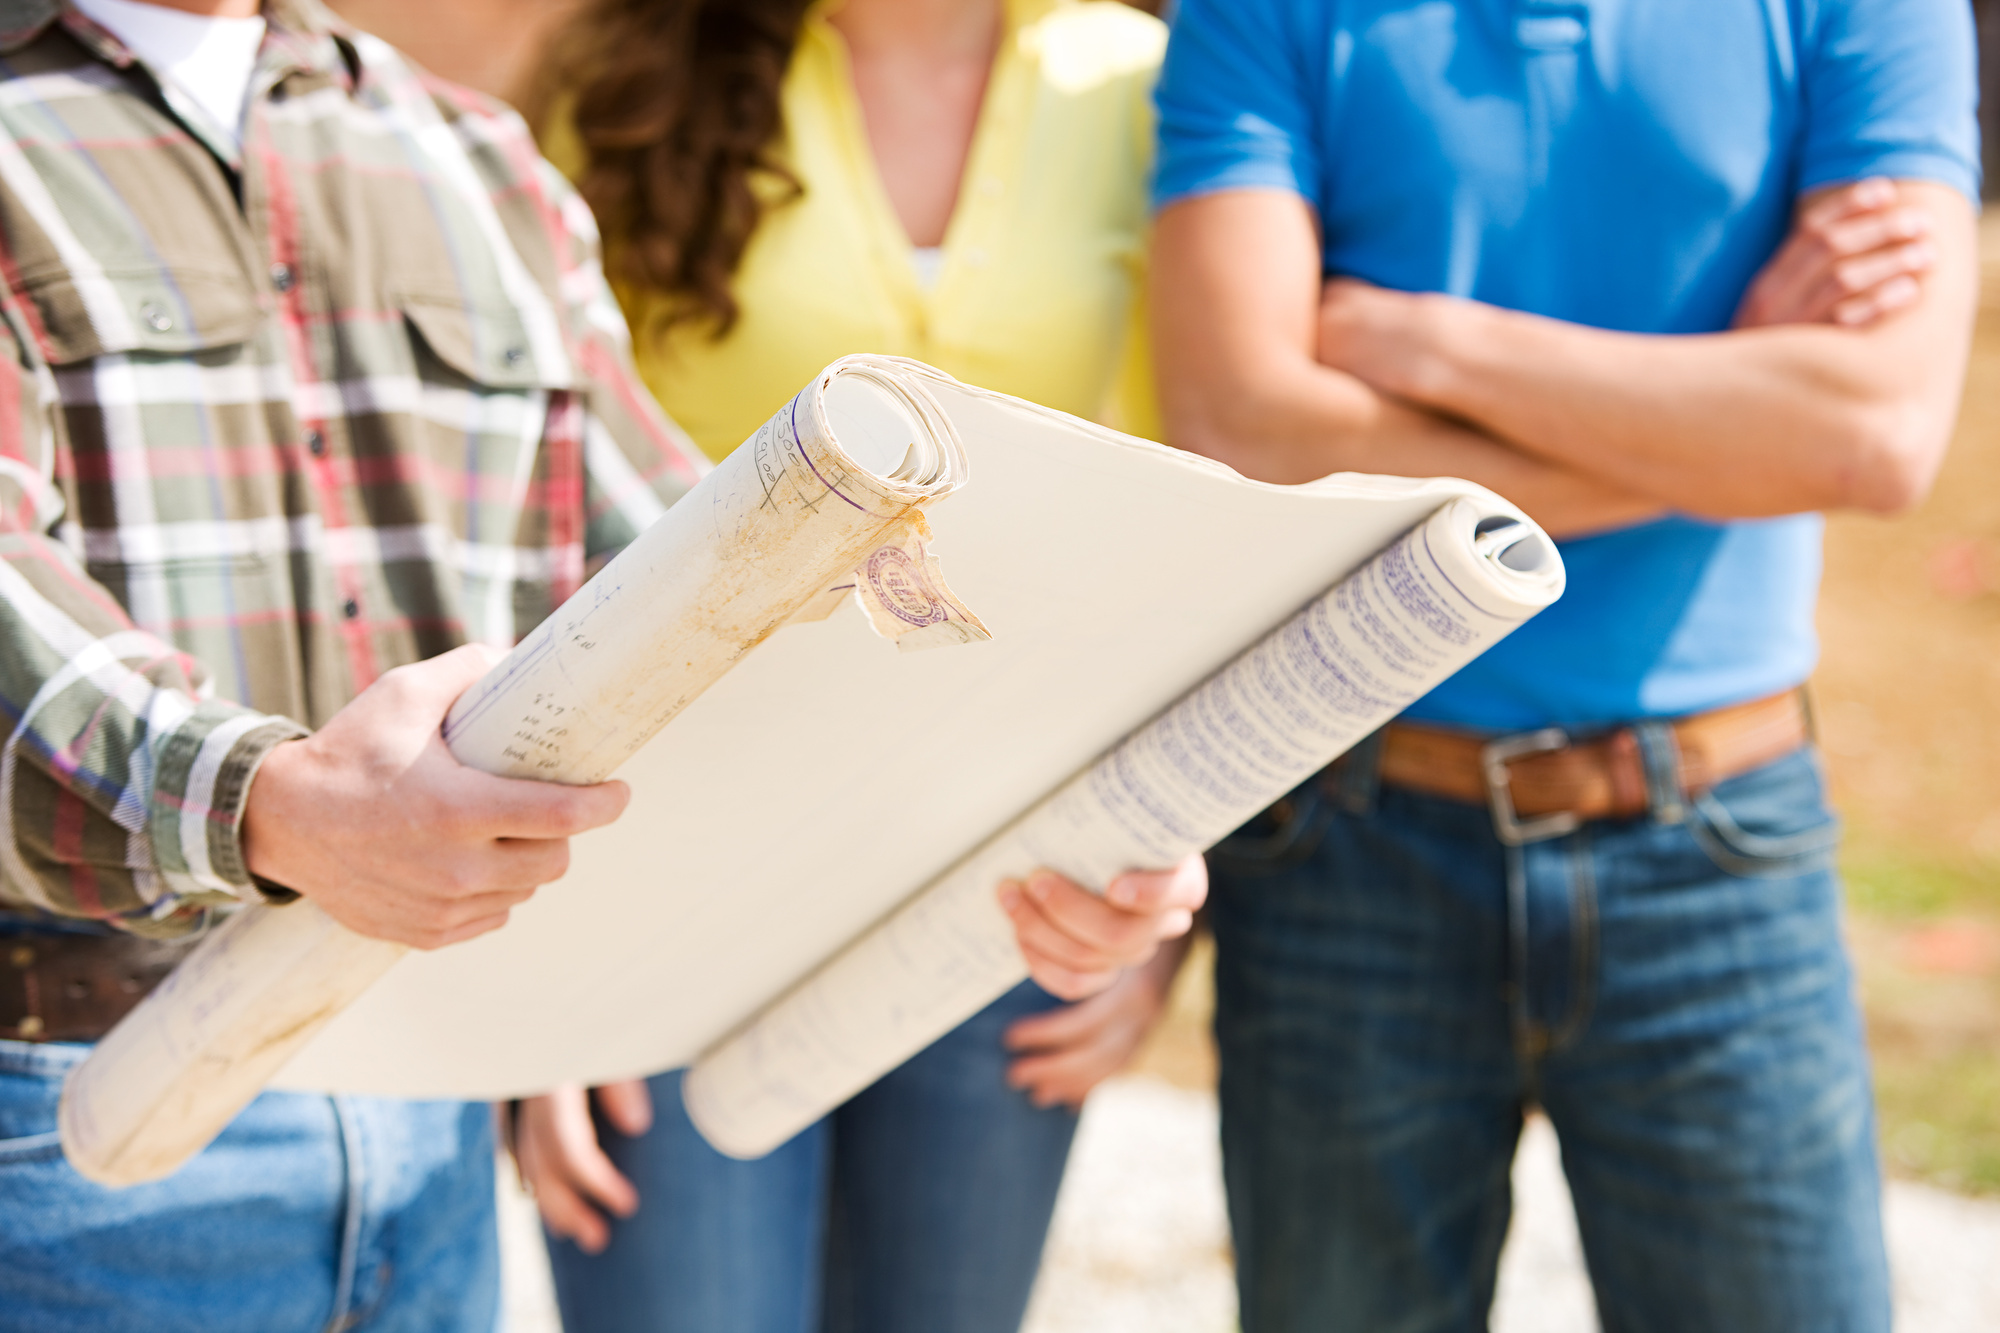 What To Ask Your Contractor: 5 Questions To Ask A Contractor Before Work Starts